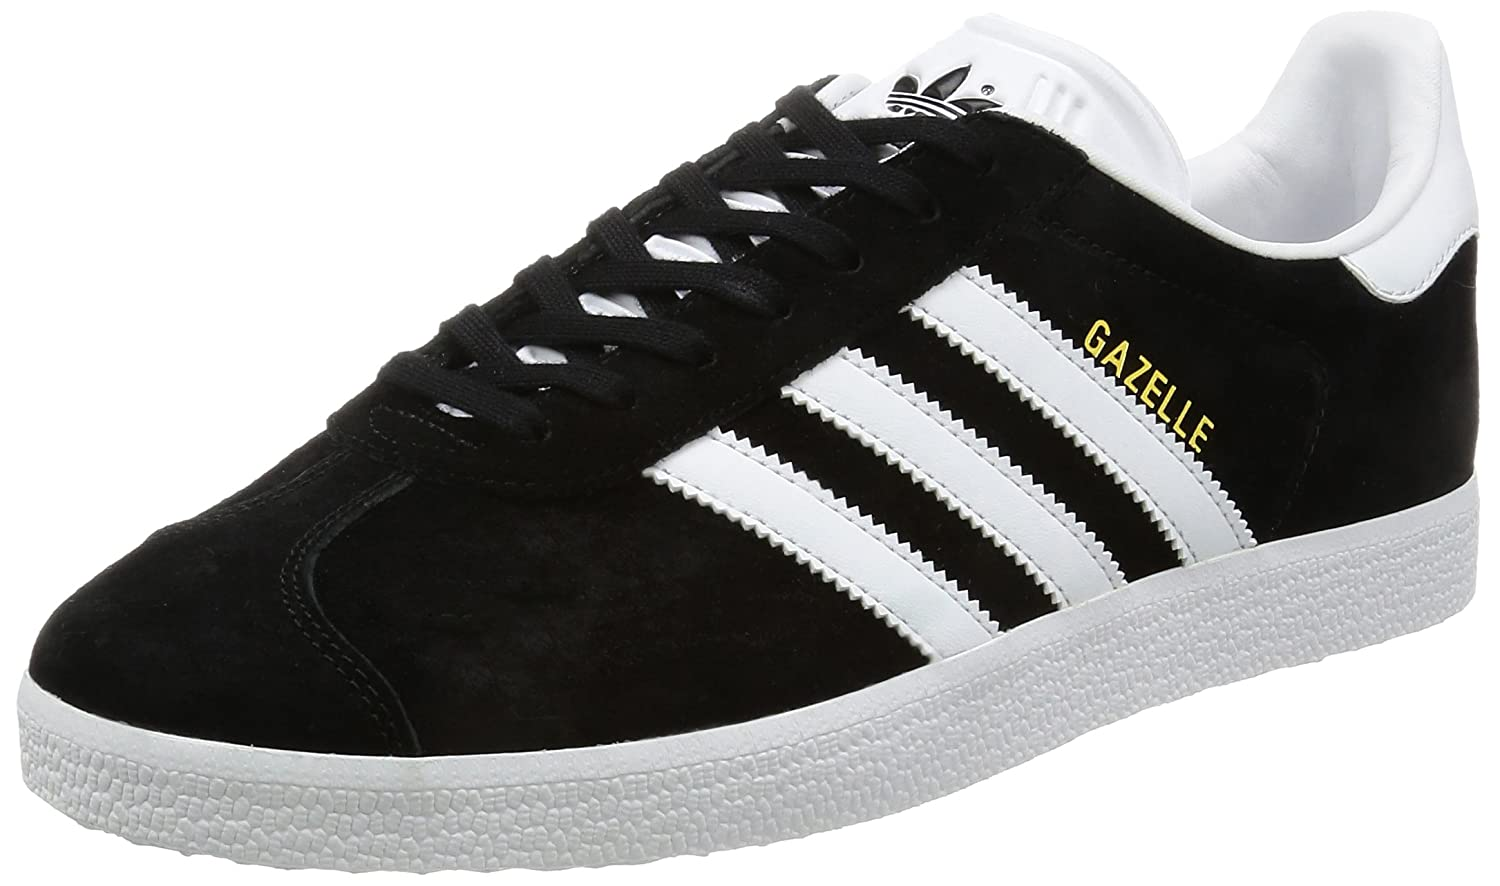 the best attitude 0acfa 182bc adidas Australia Mens Gazelle Trainers, Core BlackWhiteGold Metallic, 9  US Amazon.com.au Fashion